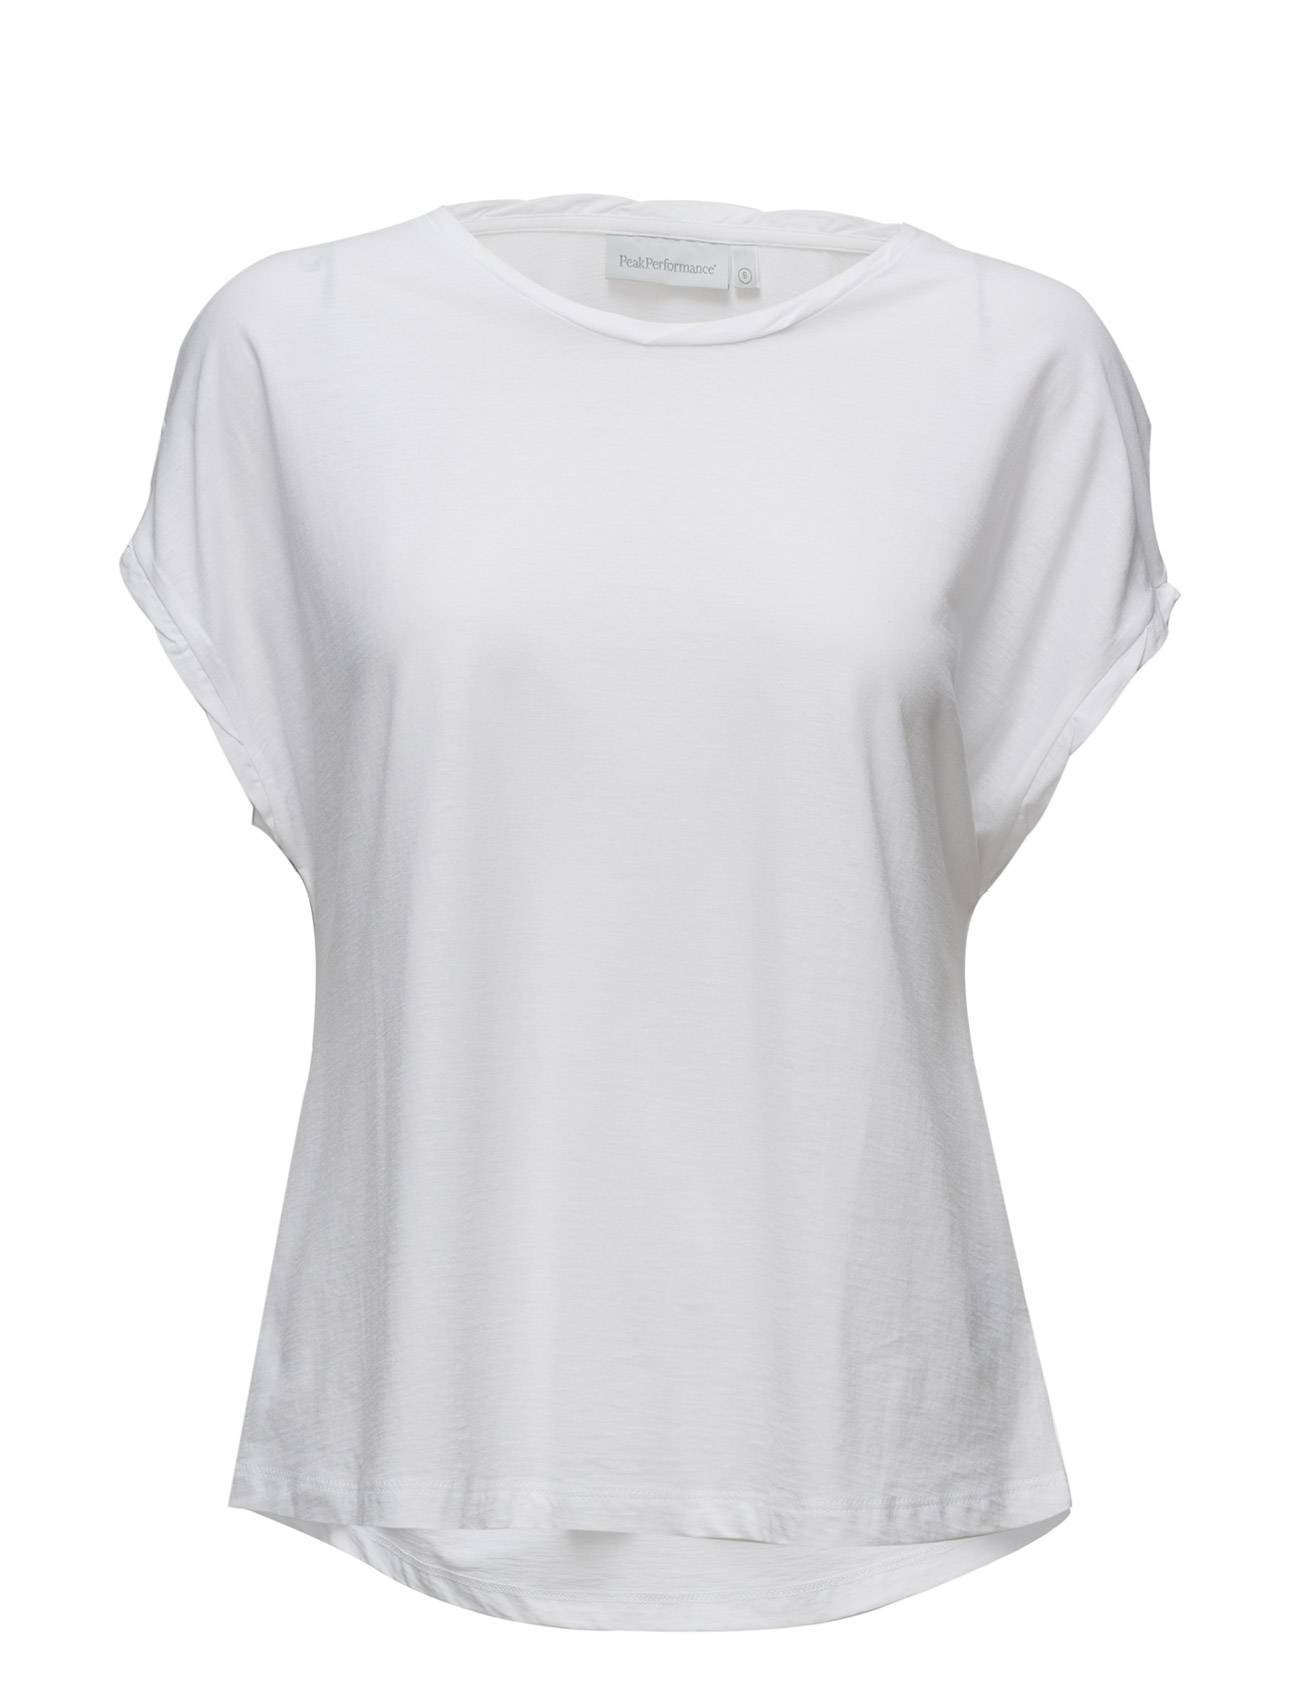 Peak Performance Crepe Top